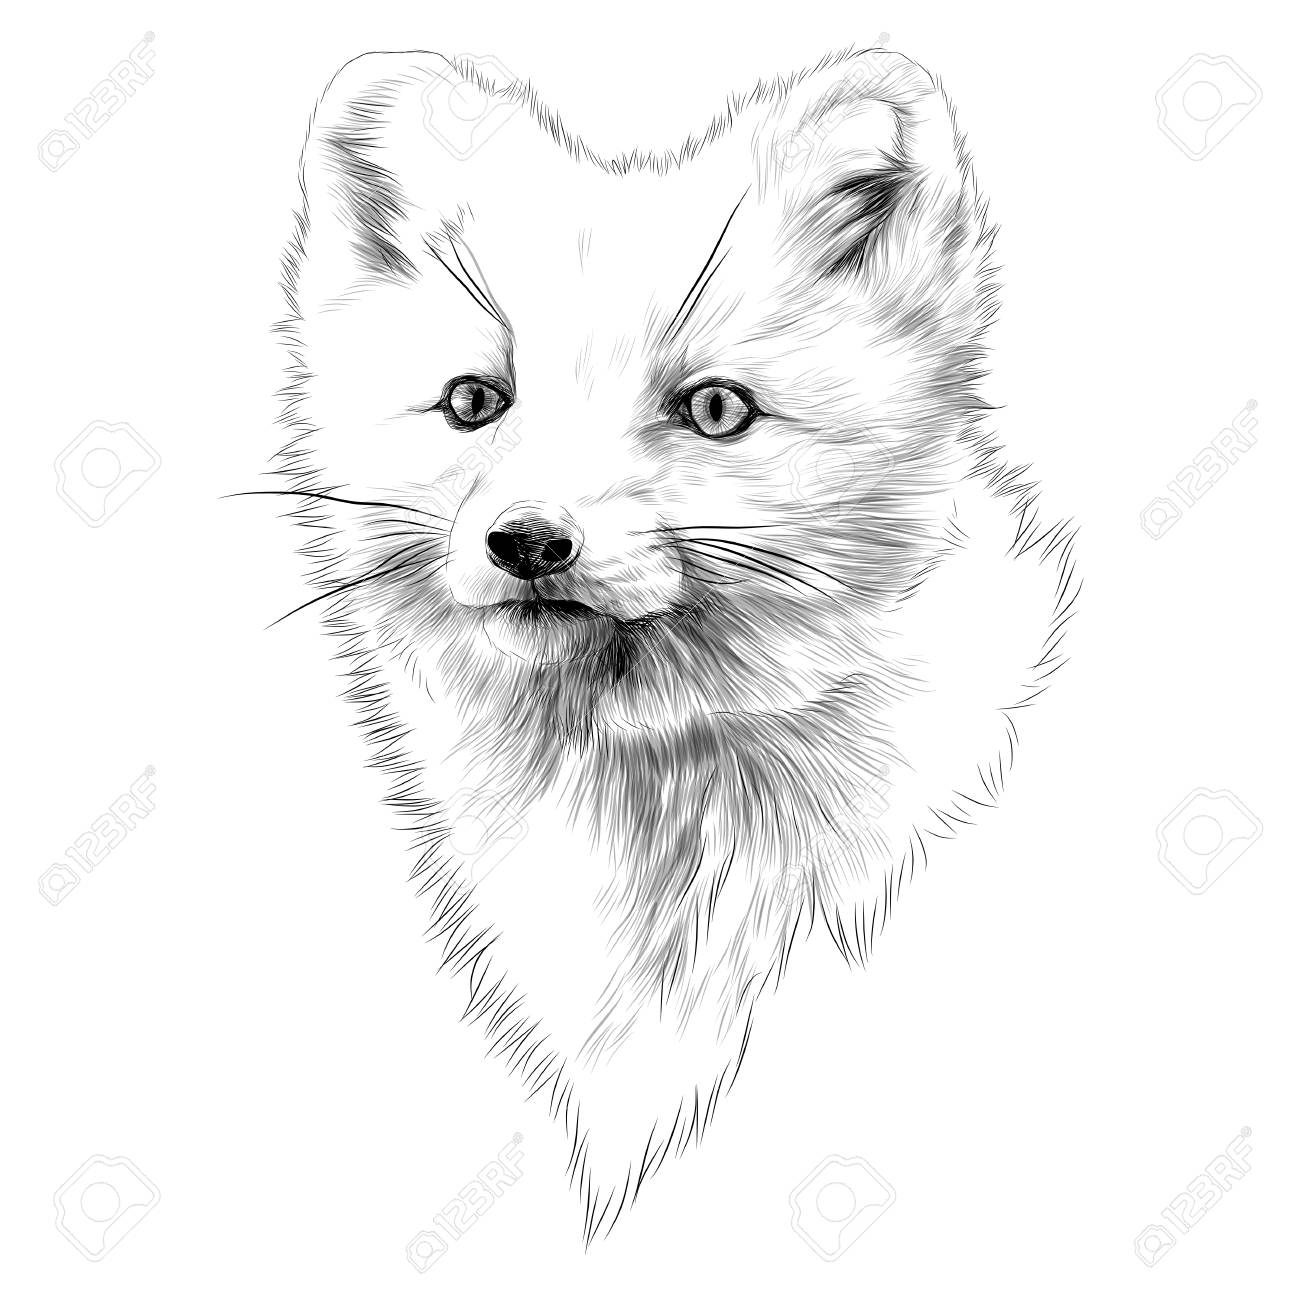 Arctic fox head sketch graphic design stock vector 91604705